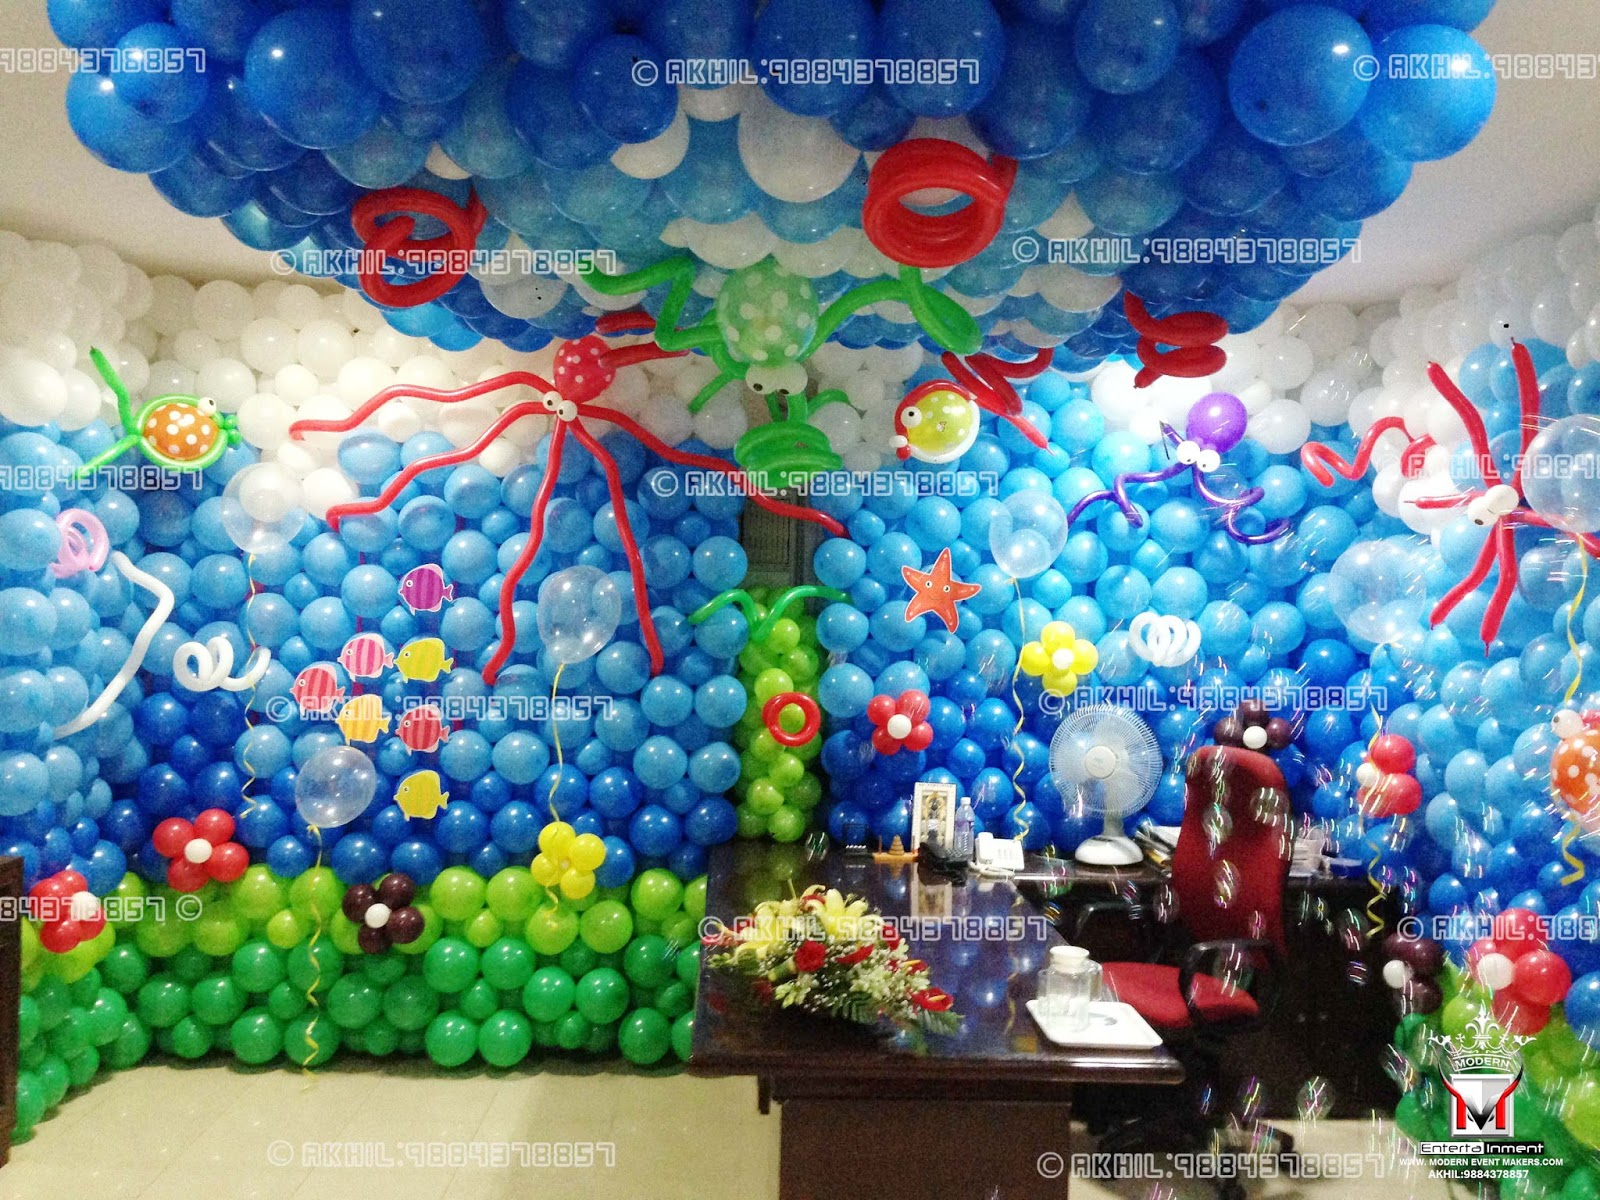 Balloon party decorators balloon decorations birthday for Balloon decoration for kids birthday party